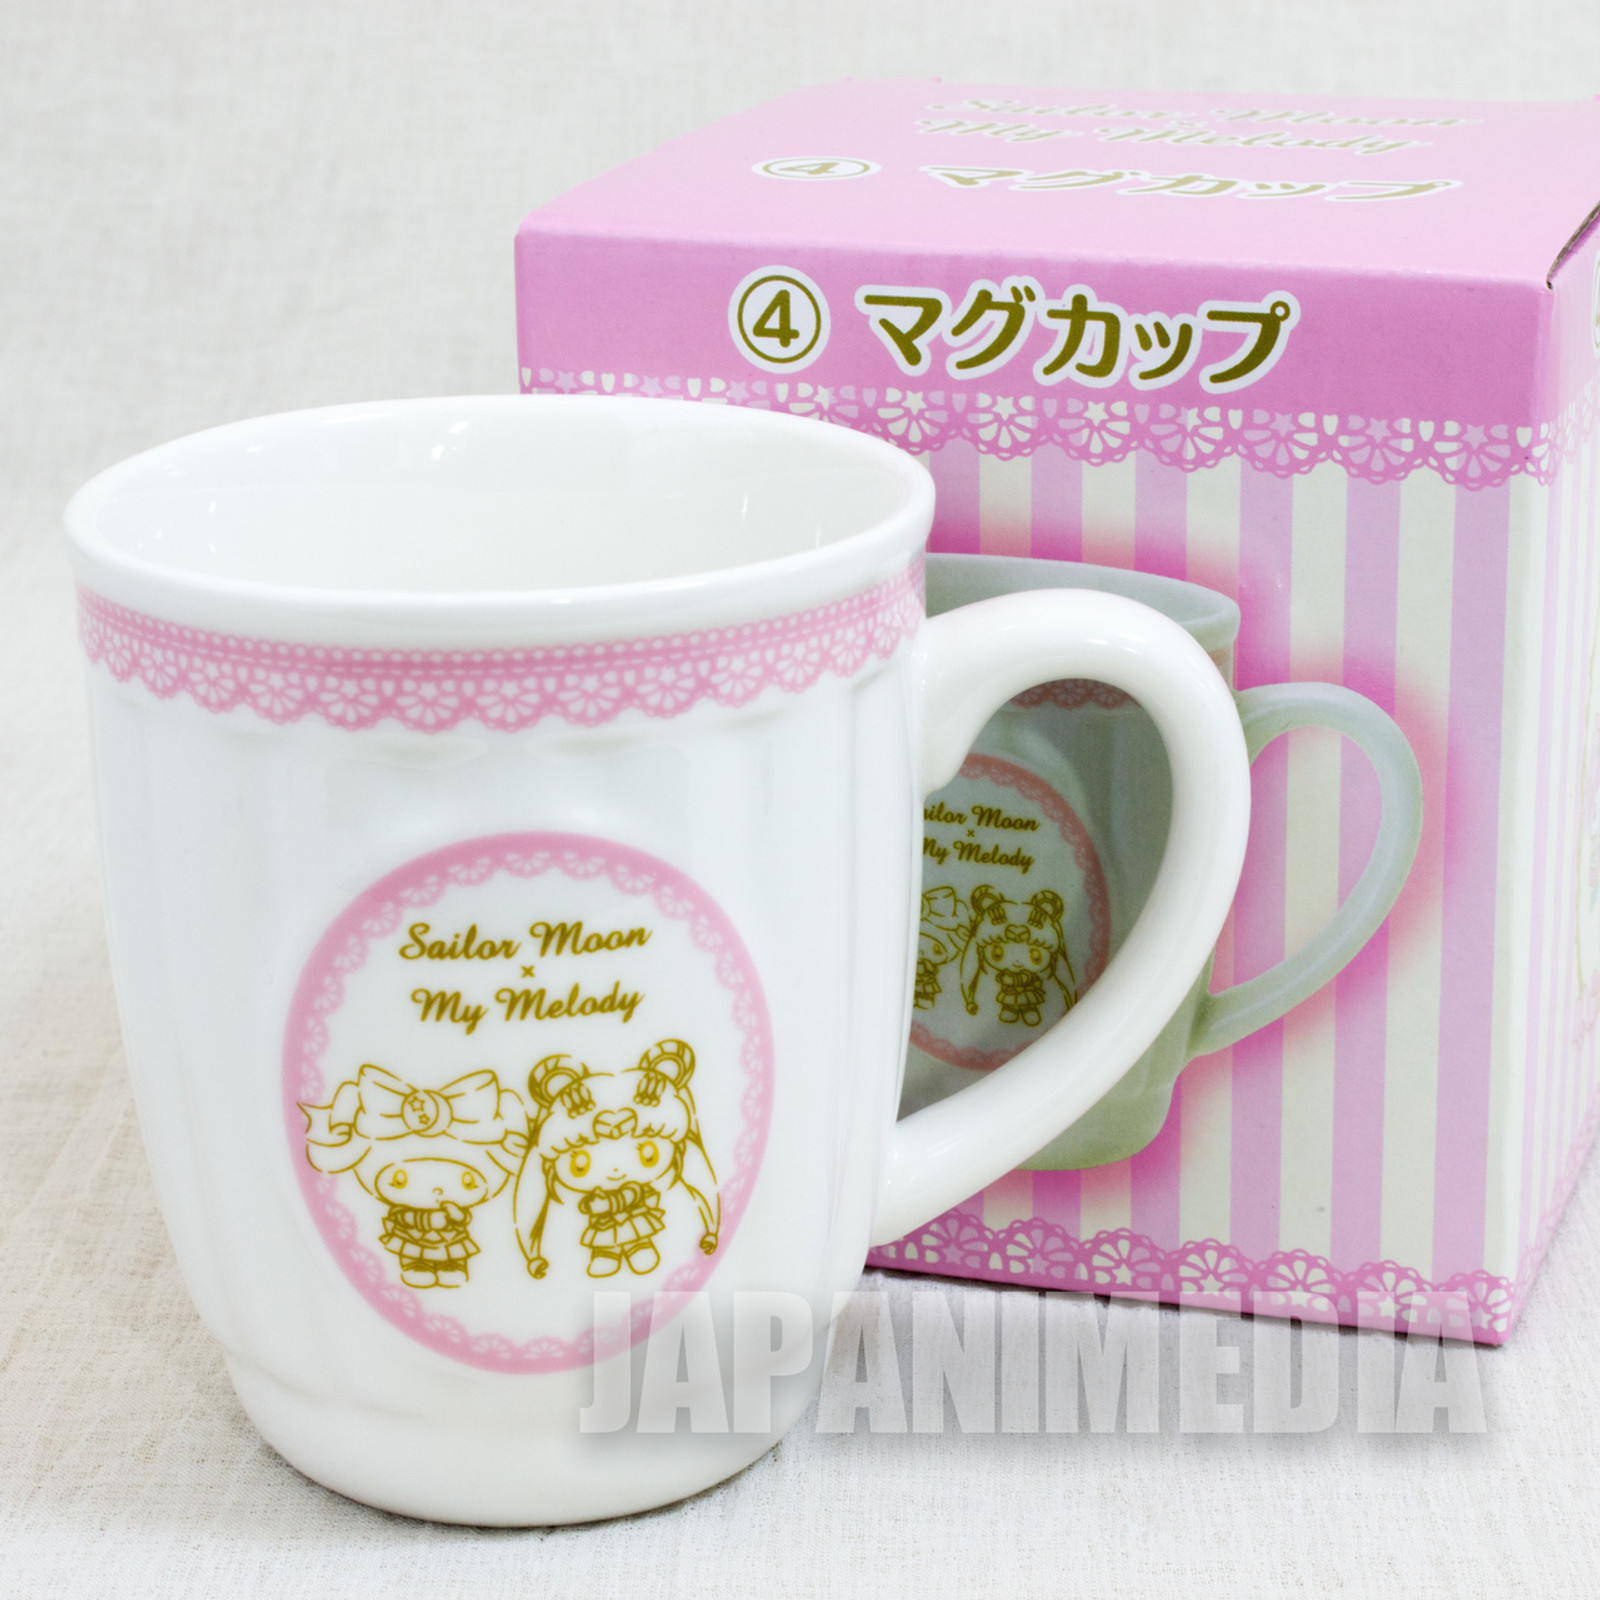 Sailor Moon x My Malody Mug Sanrio JAPAN ANIME MANGA